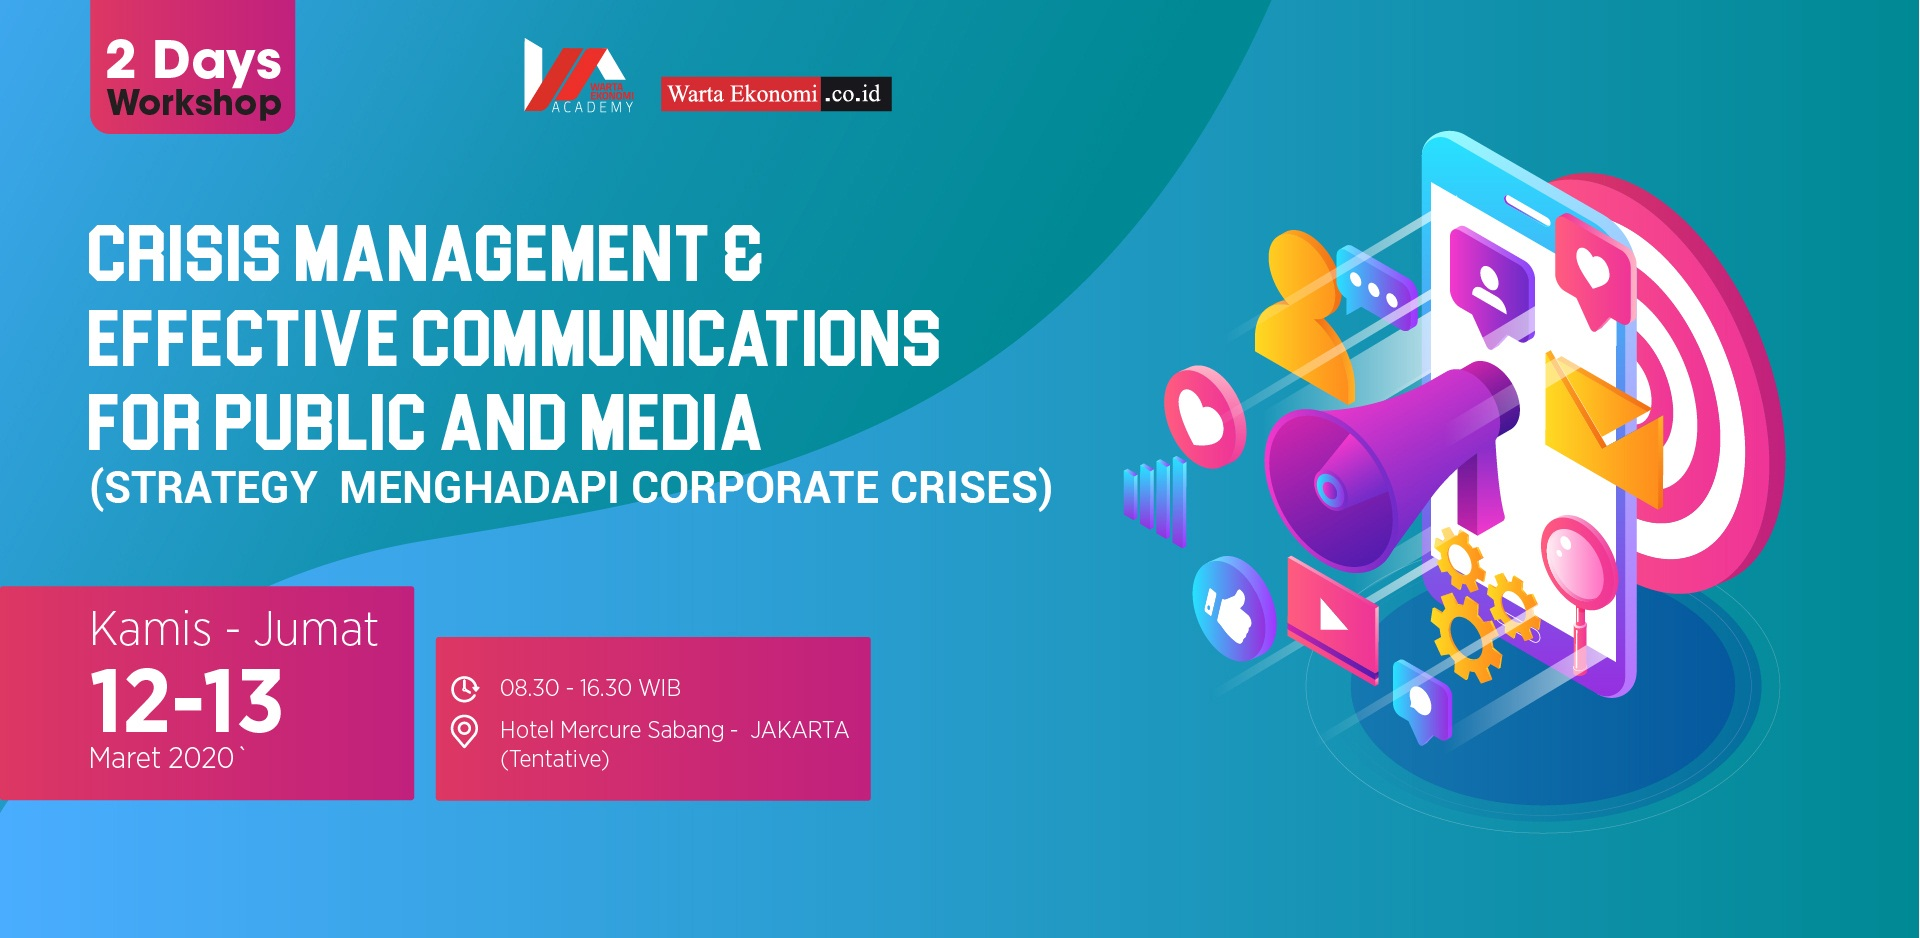 Crisis Management & Effective Communications for Public and Media